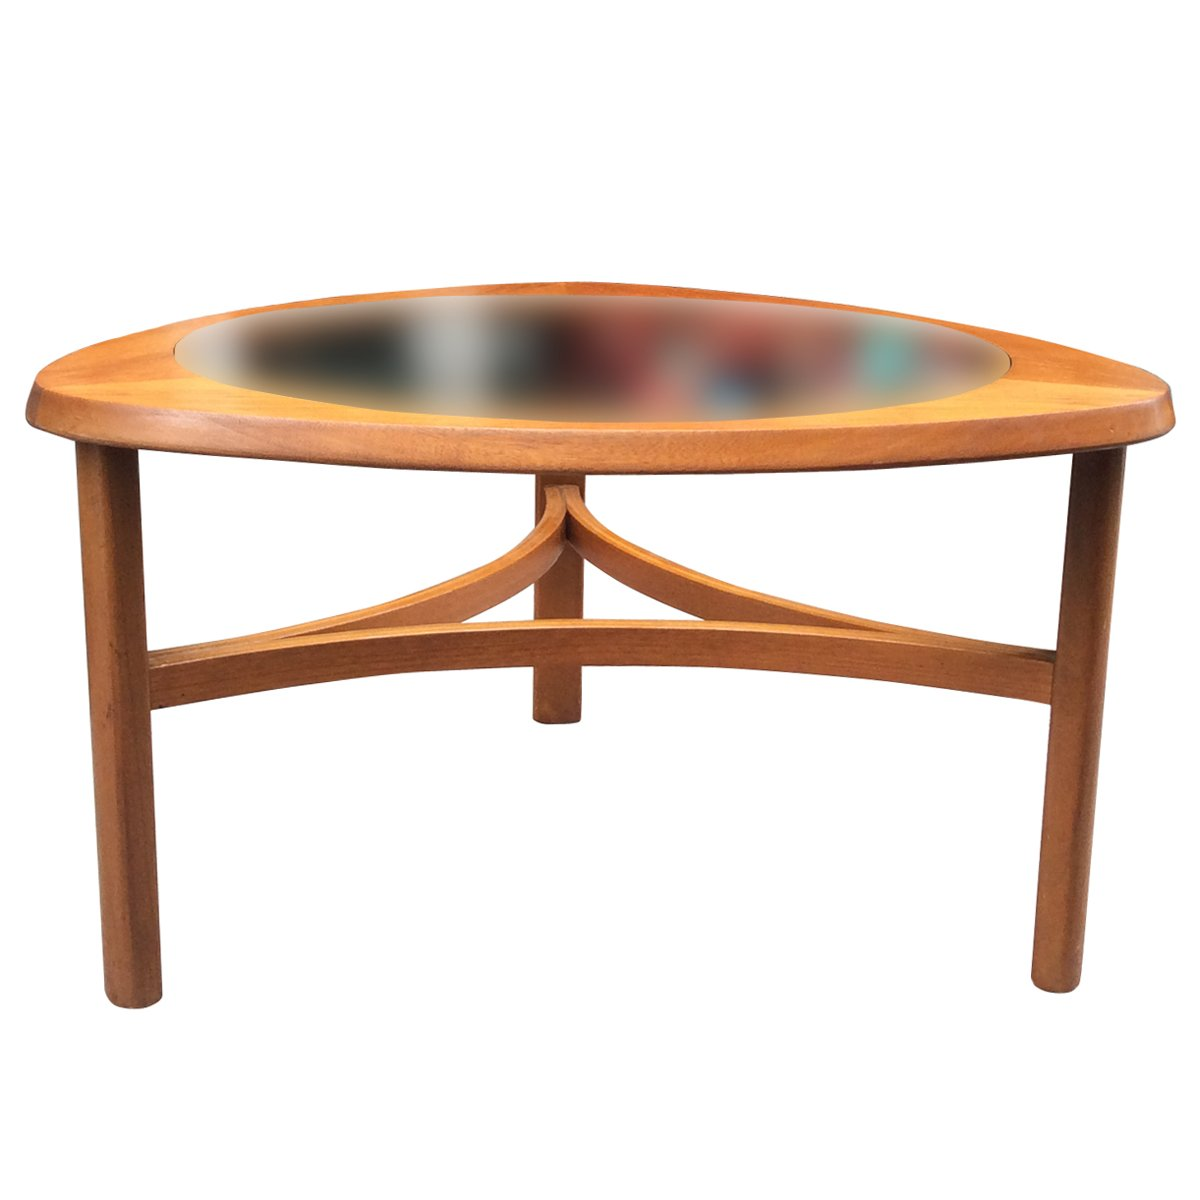 Teak Coloured Coffee Table: English Teak & Glass Coffee Table From Nathan, 1960s For